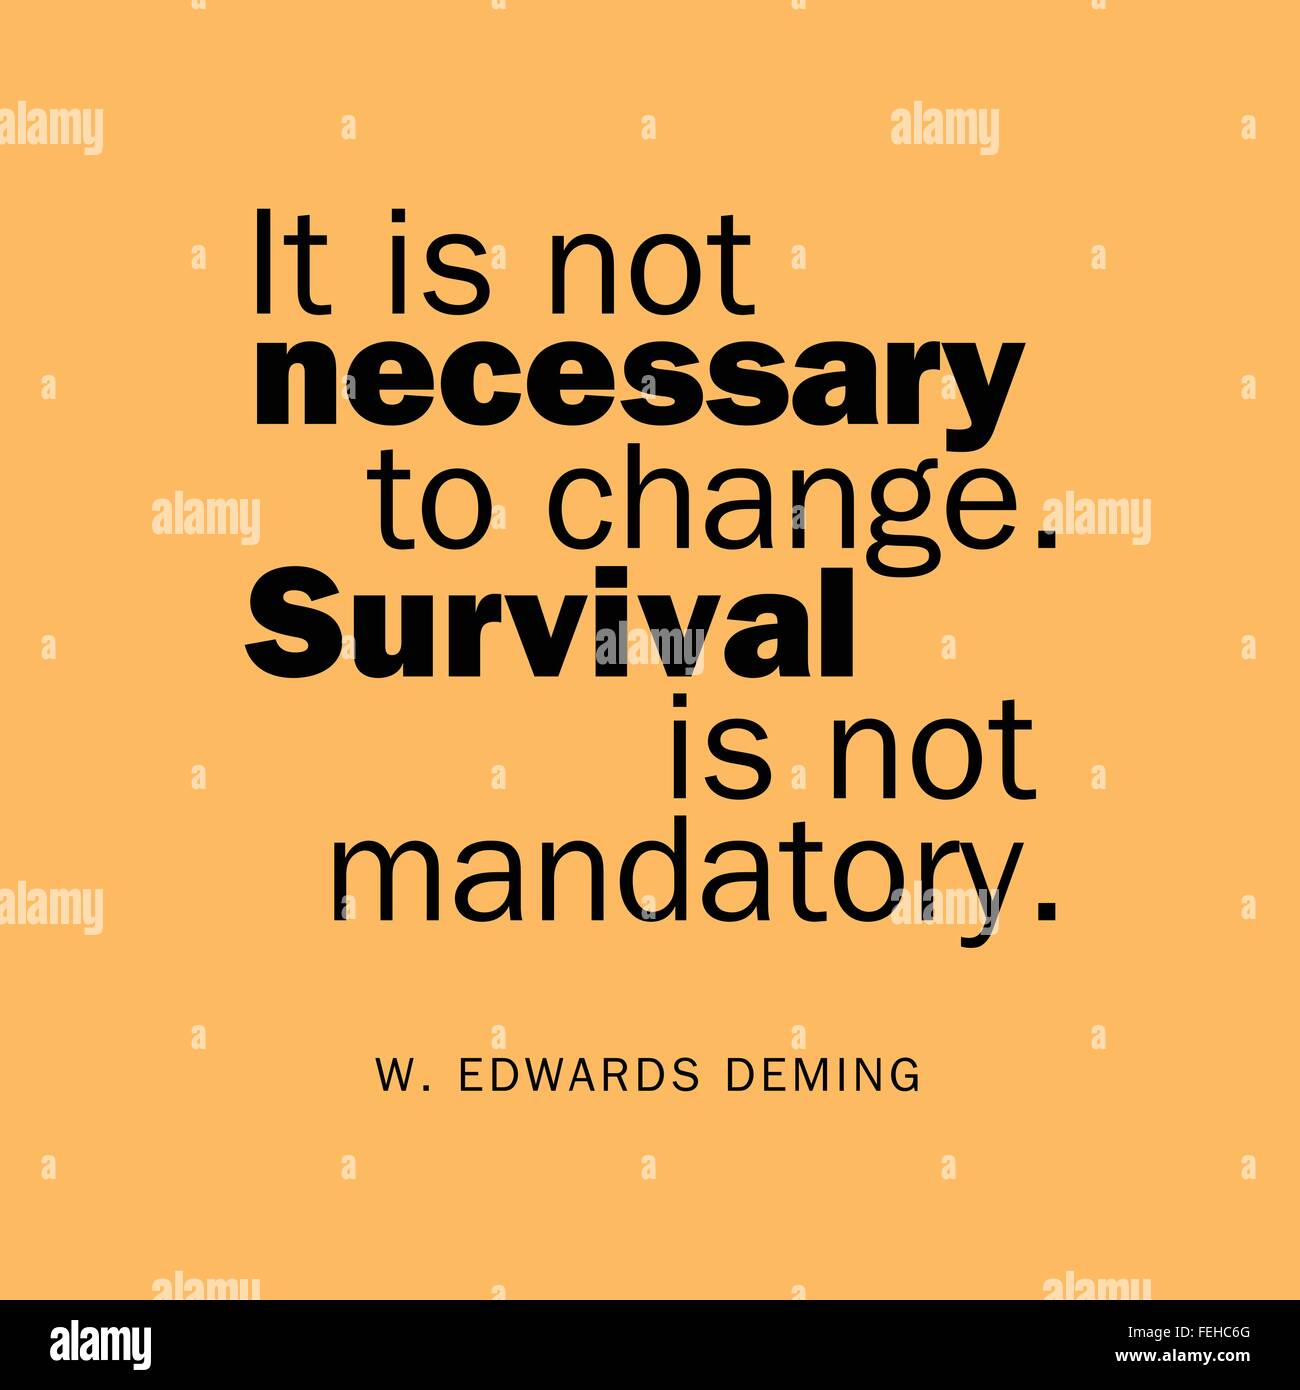 'It is not necessary to change. Survival is not mandatory.' W. Edwards Deming - Stock Image